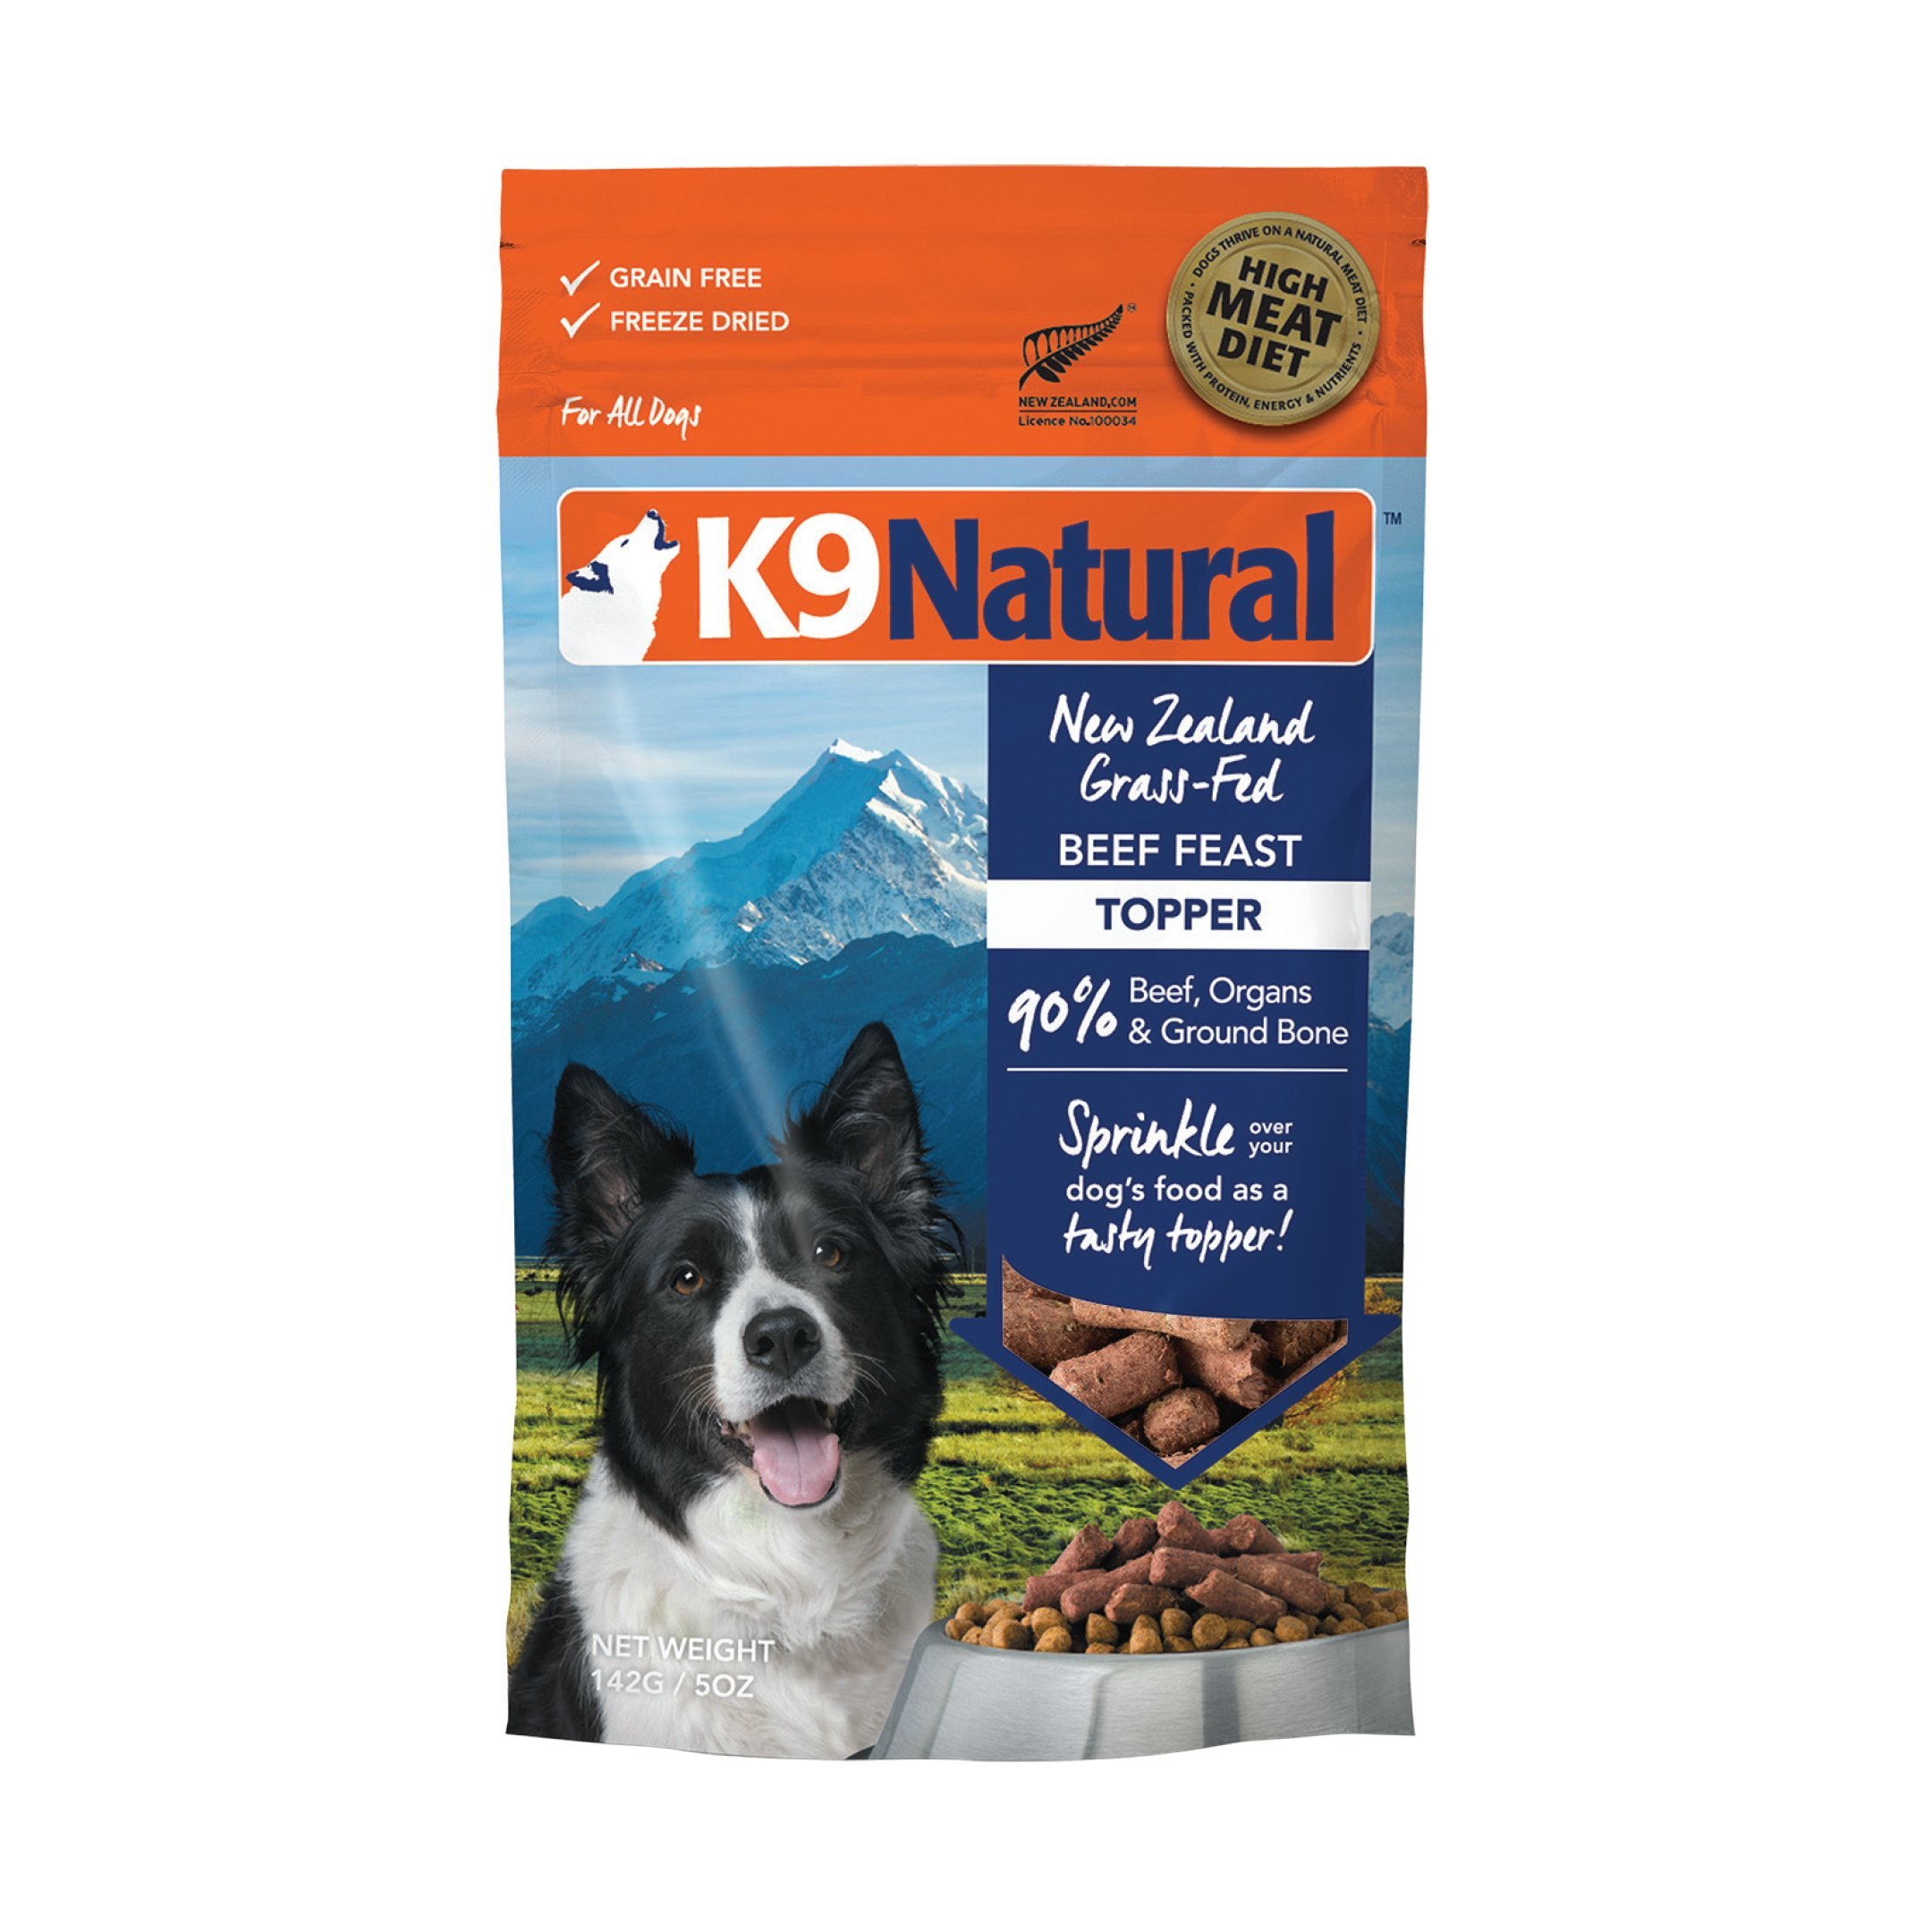 Freeze Dried Dog Food Topper By K9 Natural - Perfect Grain Free, Healthy, Hypoallergenic Limited Ingredients For All Dogs - Raw, Freeze Dried Mixer - Beef Topper - 5oz Pack by K9 Natural